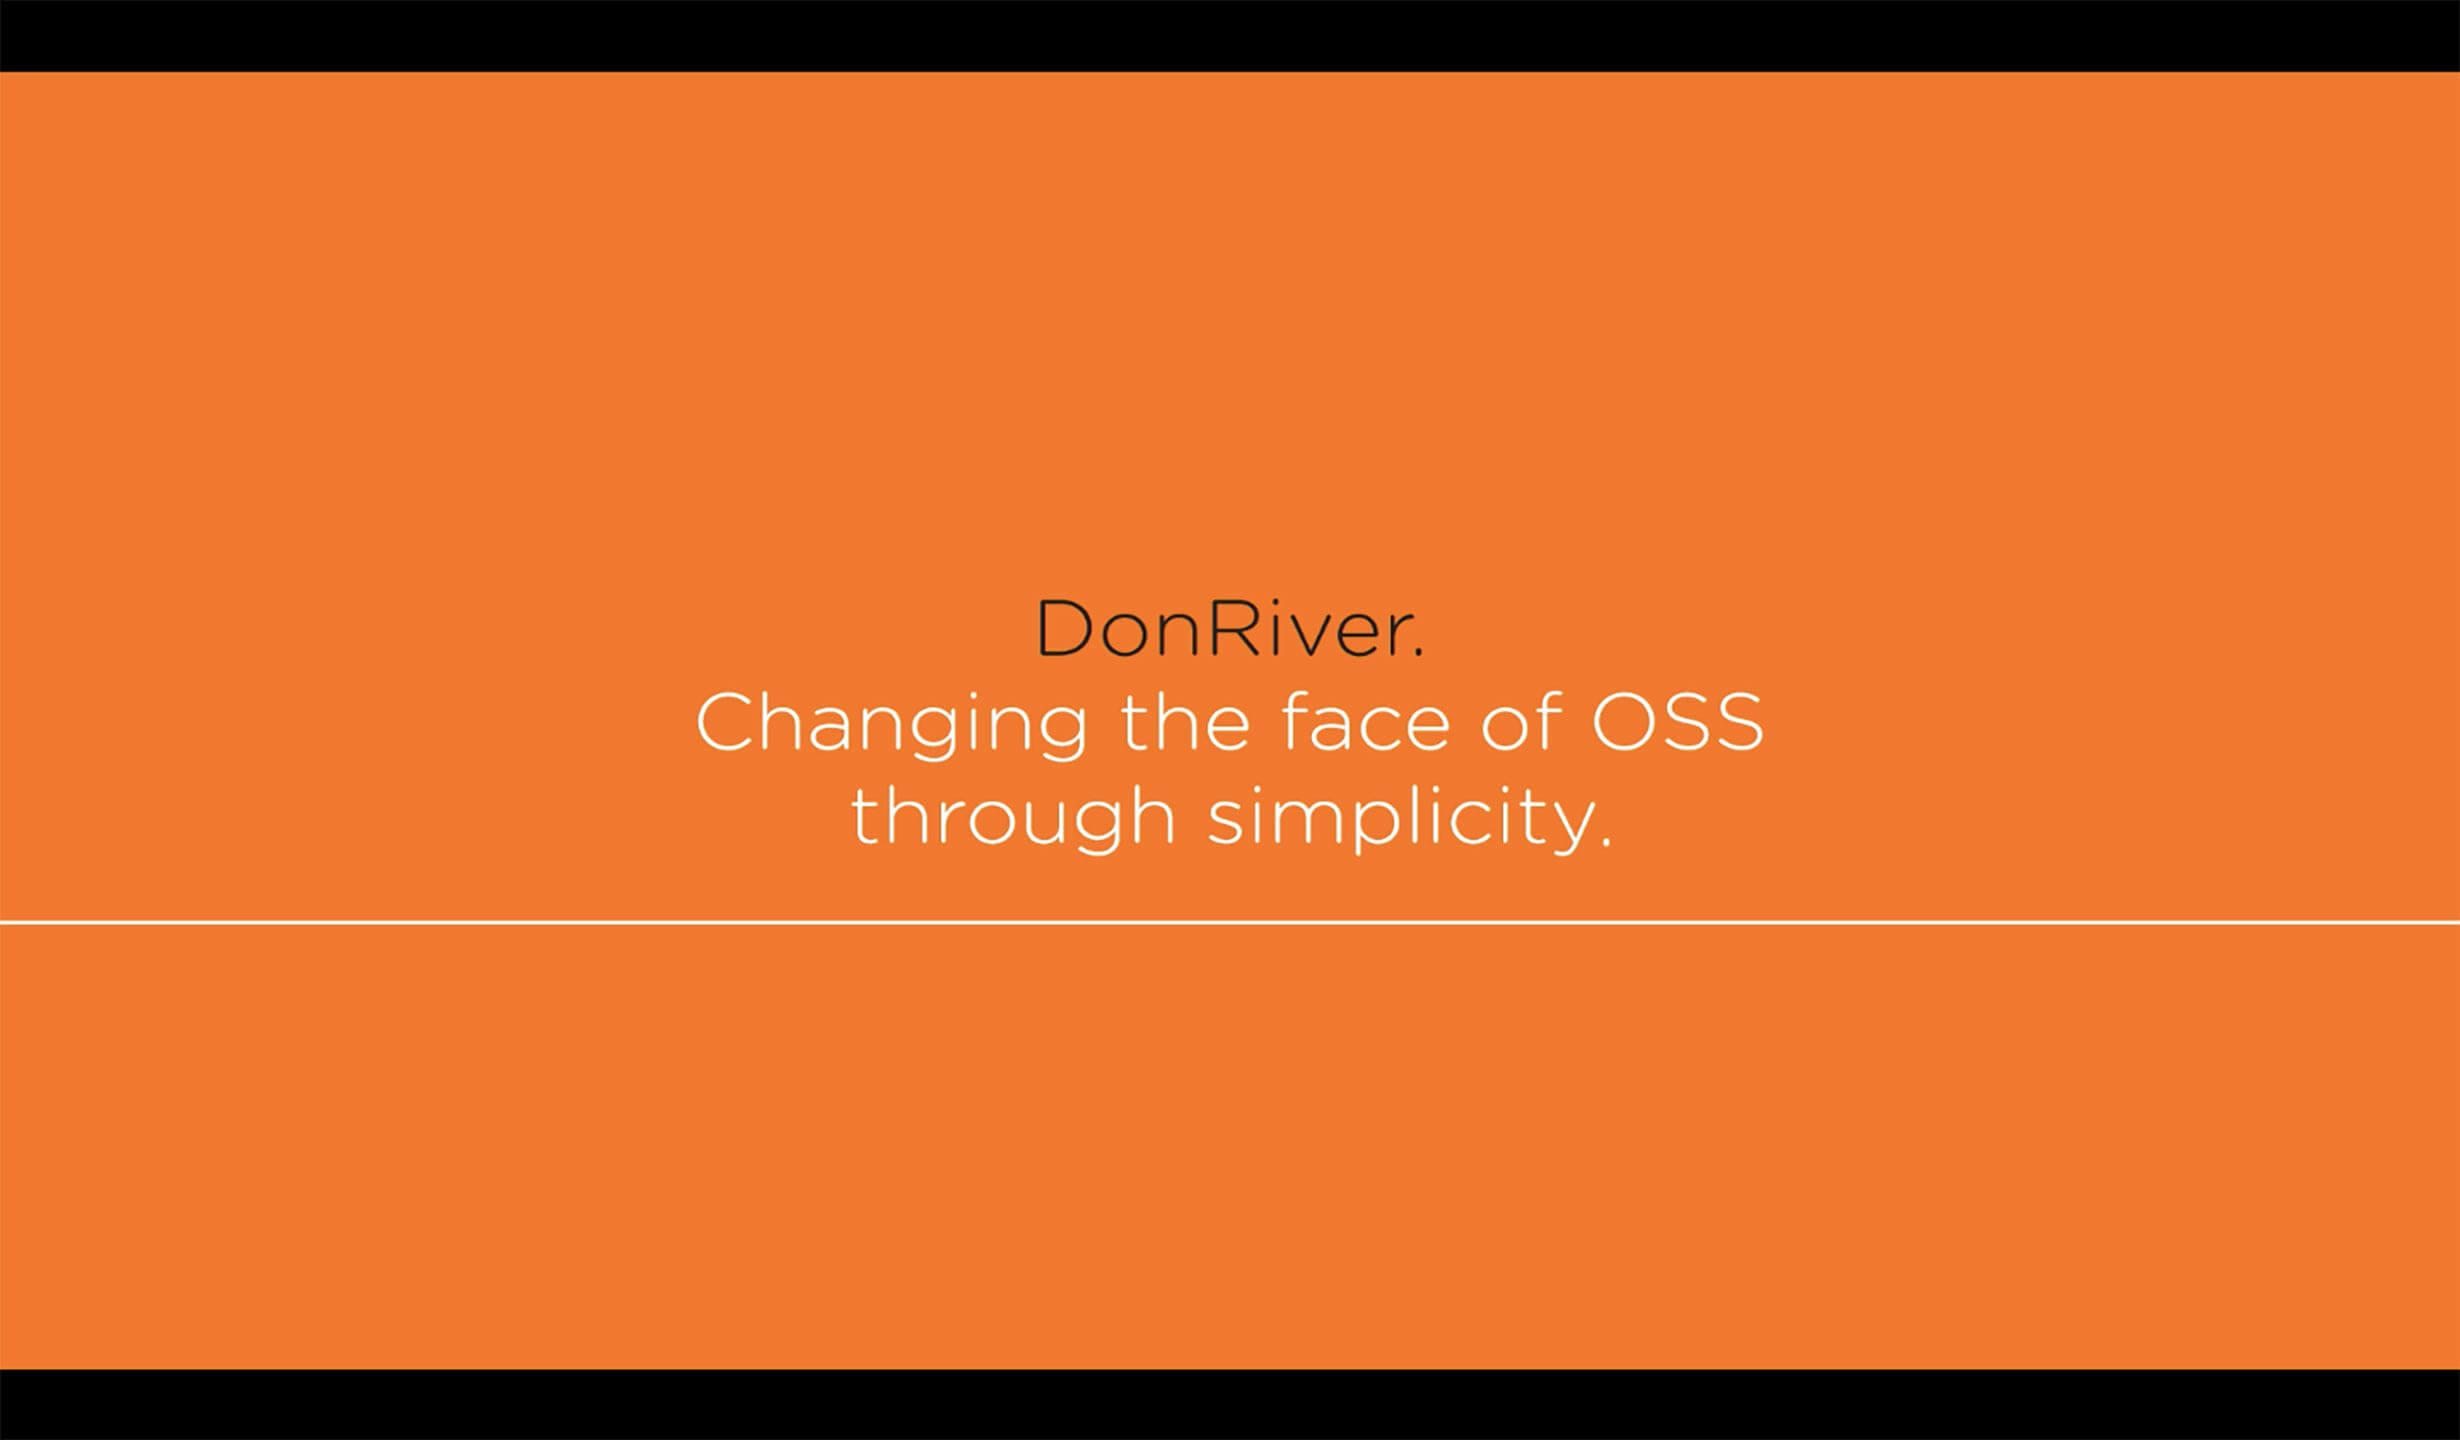 """DonRiver<strong>Brand positioning, video and content marketing campaign</strong><a href=""""/case-studies/donriver-brand-positioning-and-content-marketing-campaign"""">Read the case study →</a>"""